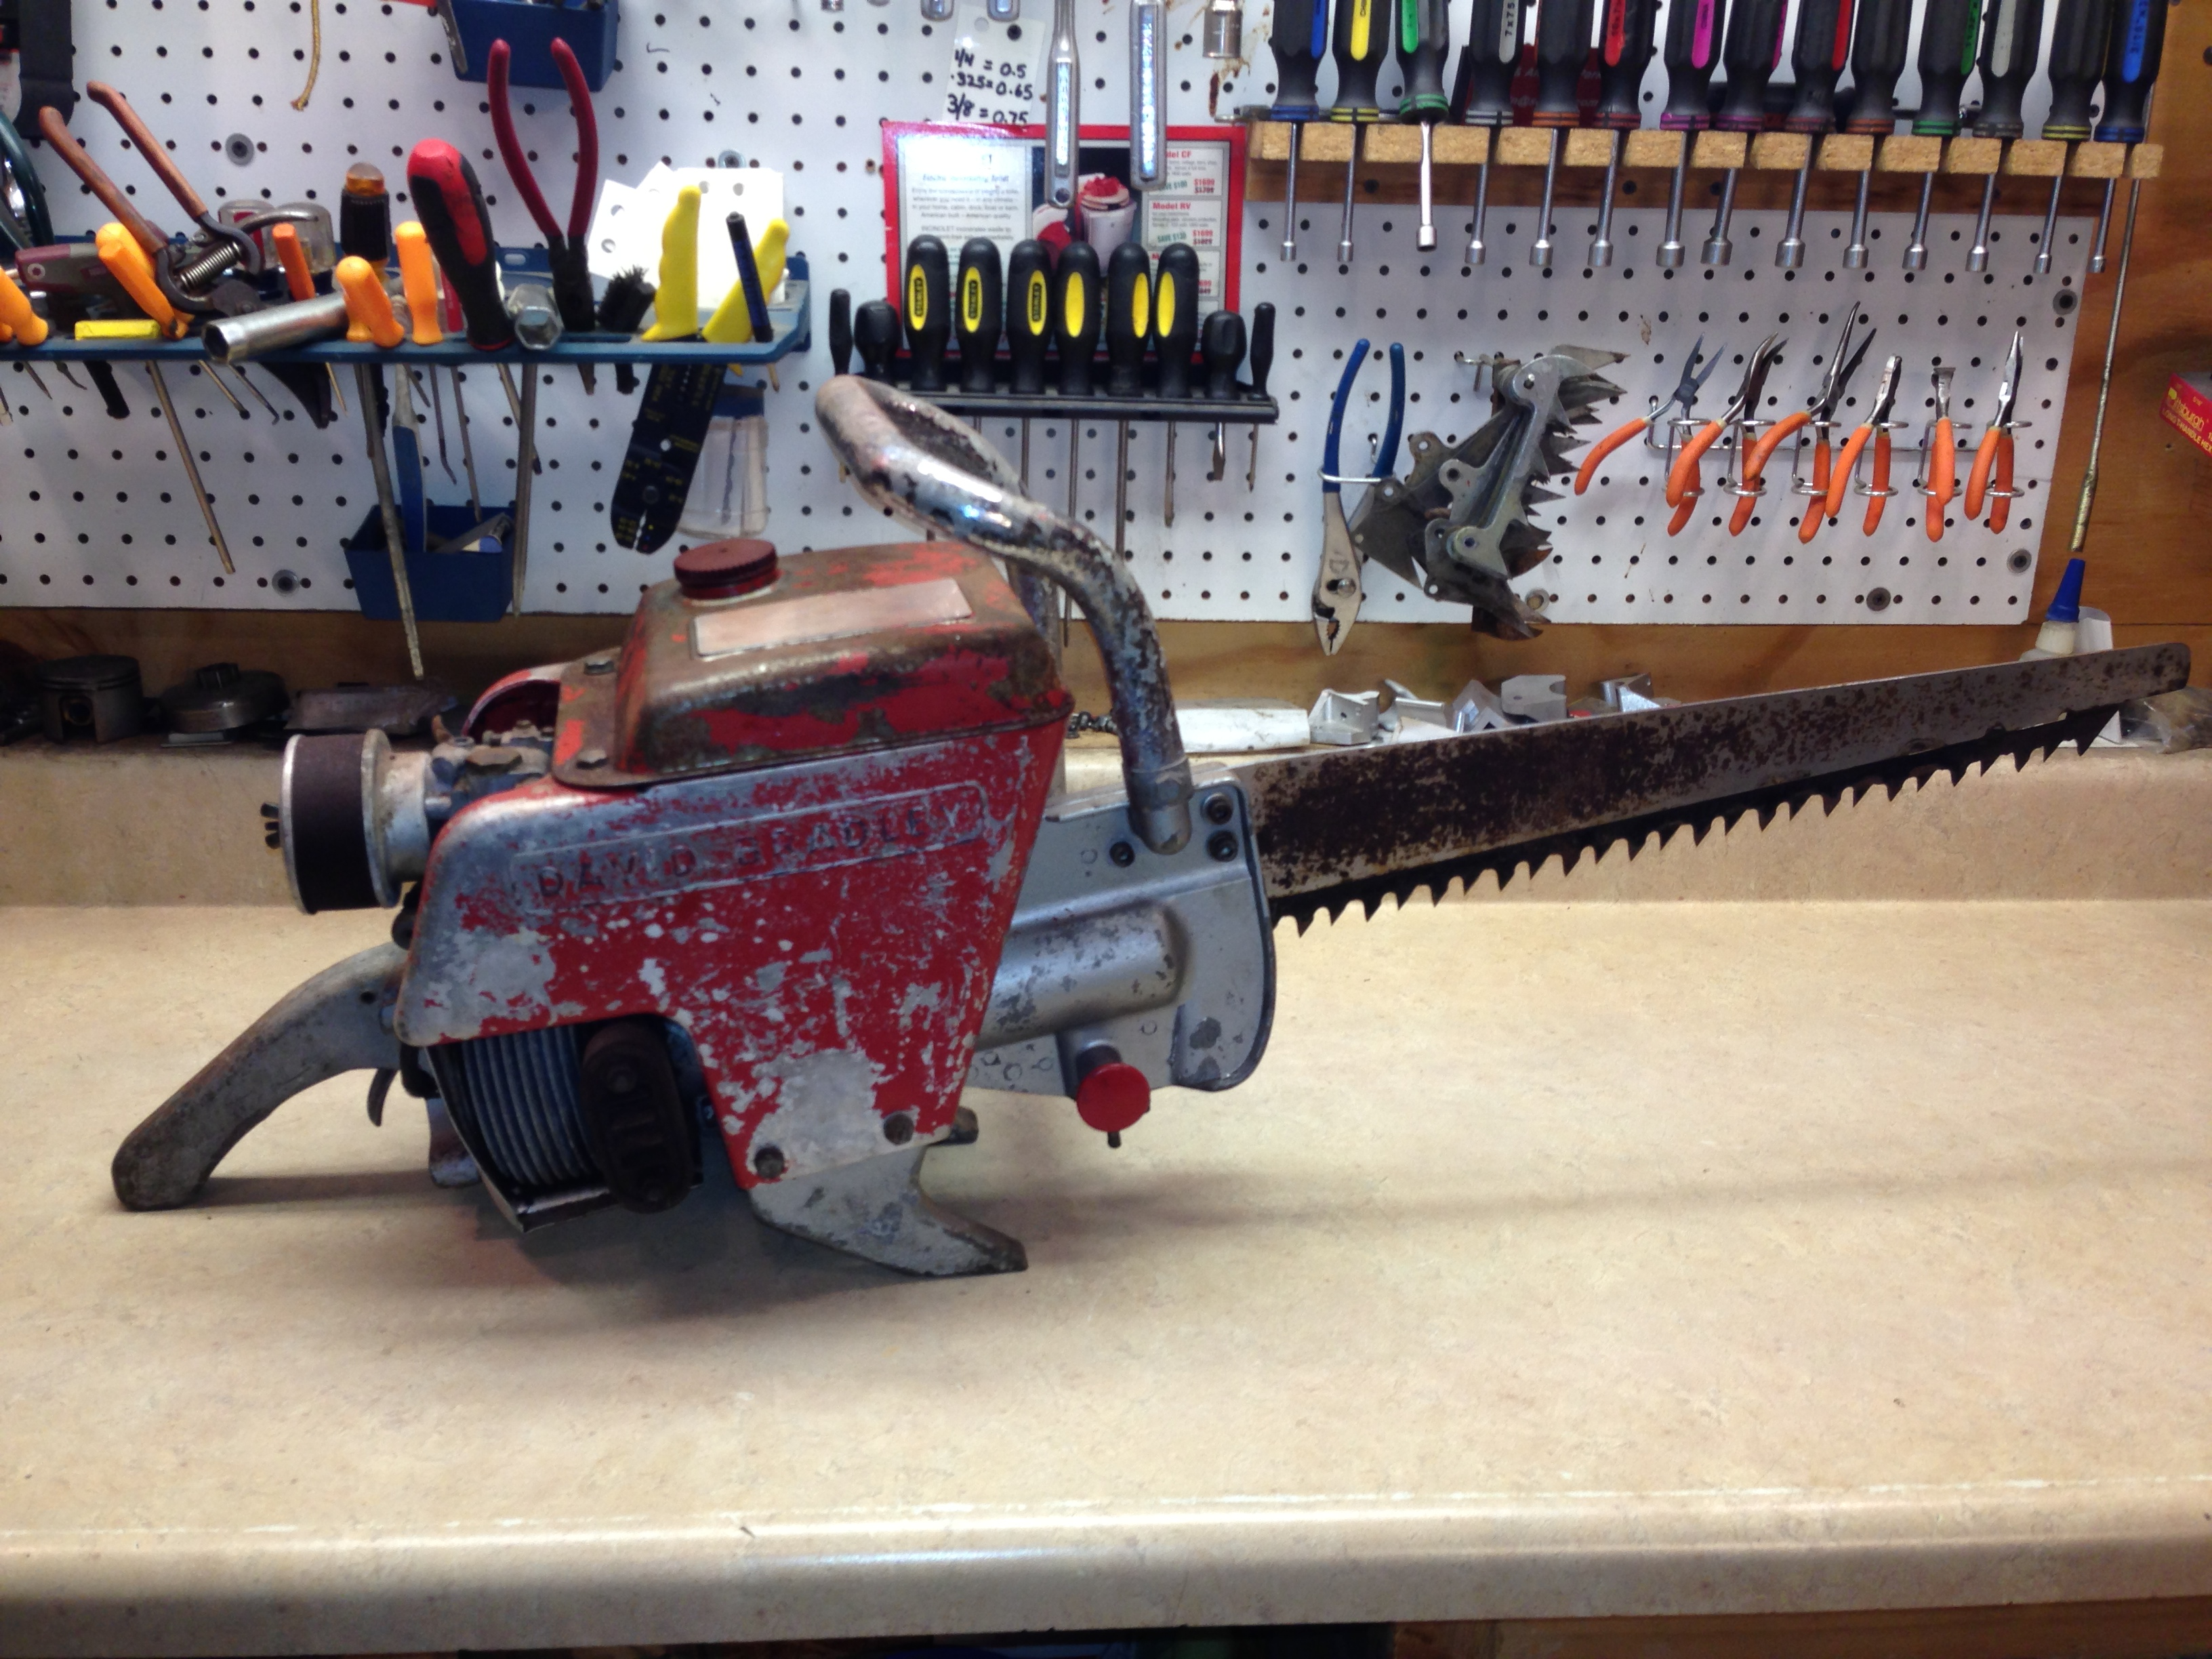 David Bradley reciprocating saw 283.83300  chainsaw (Wright GS-218) #1.JPG